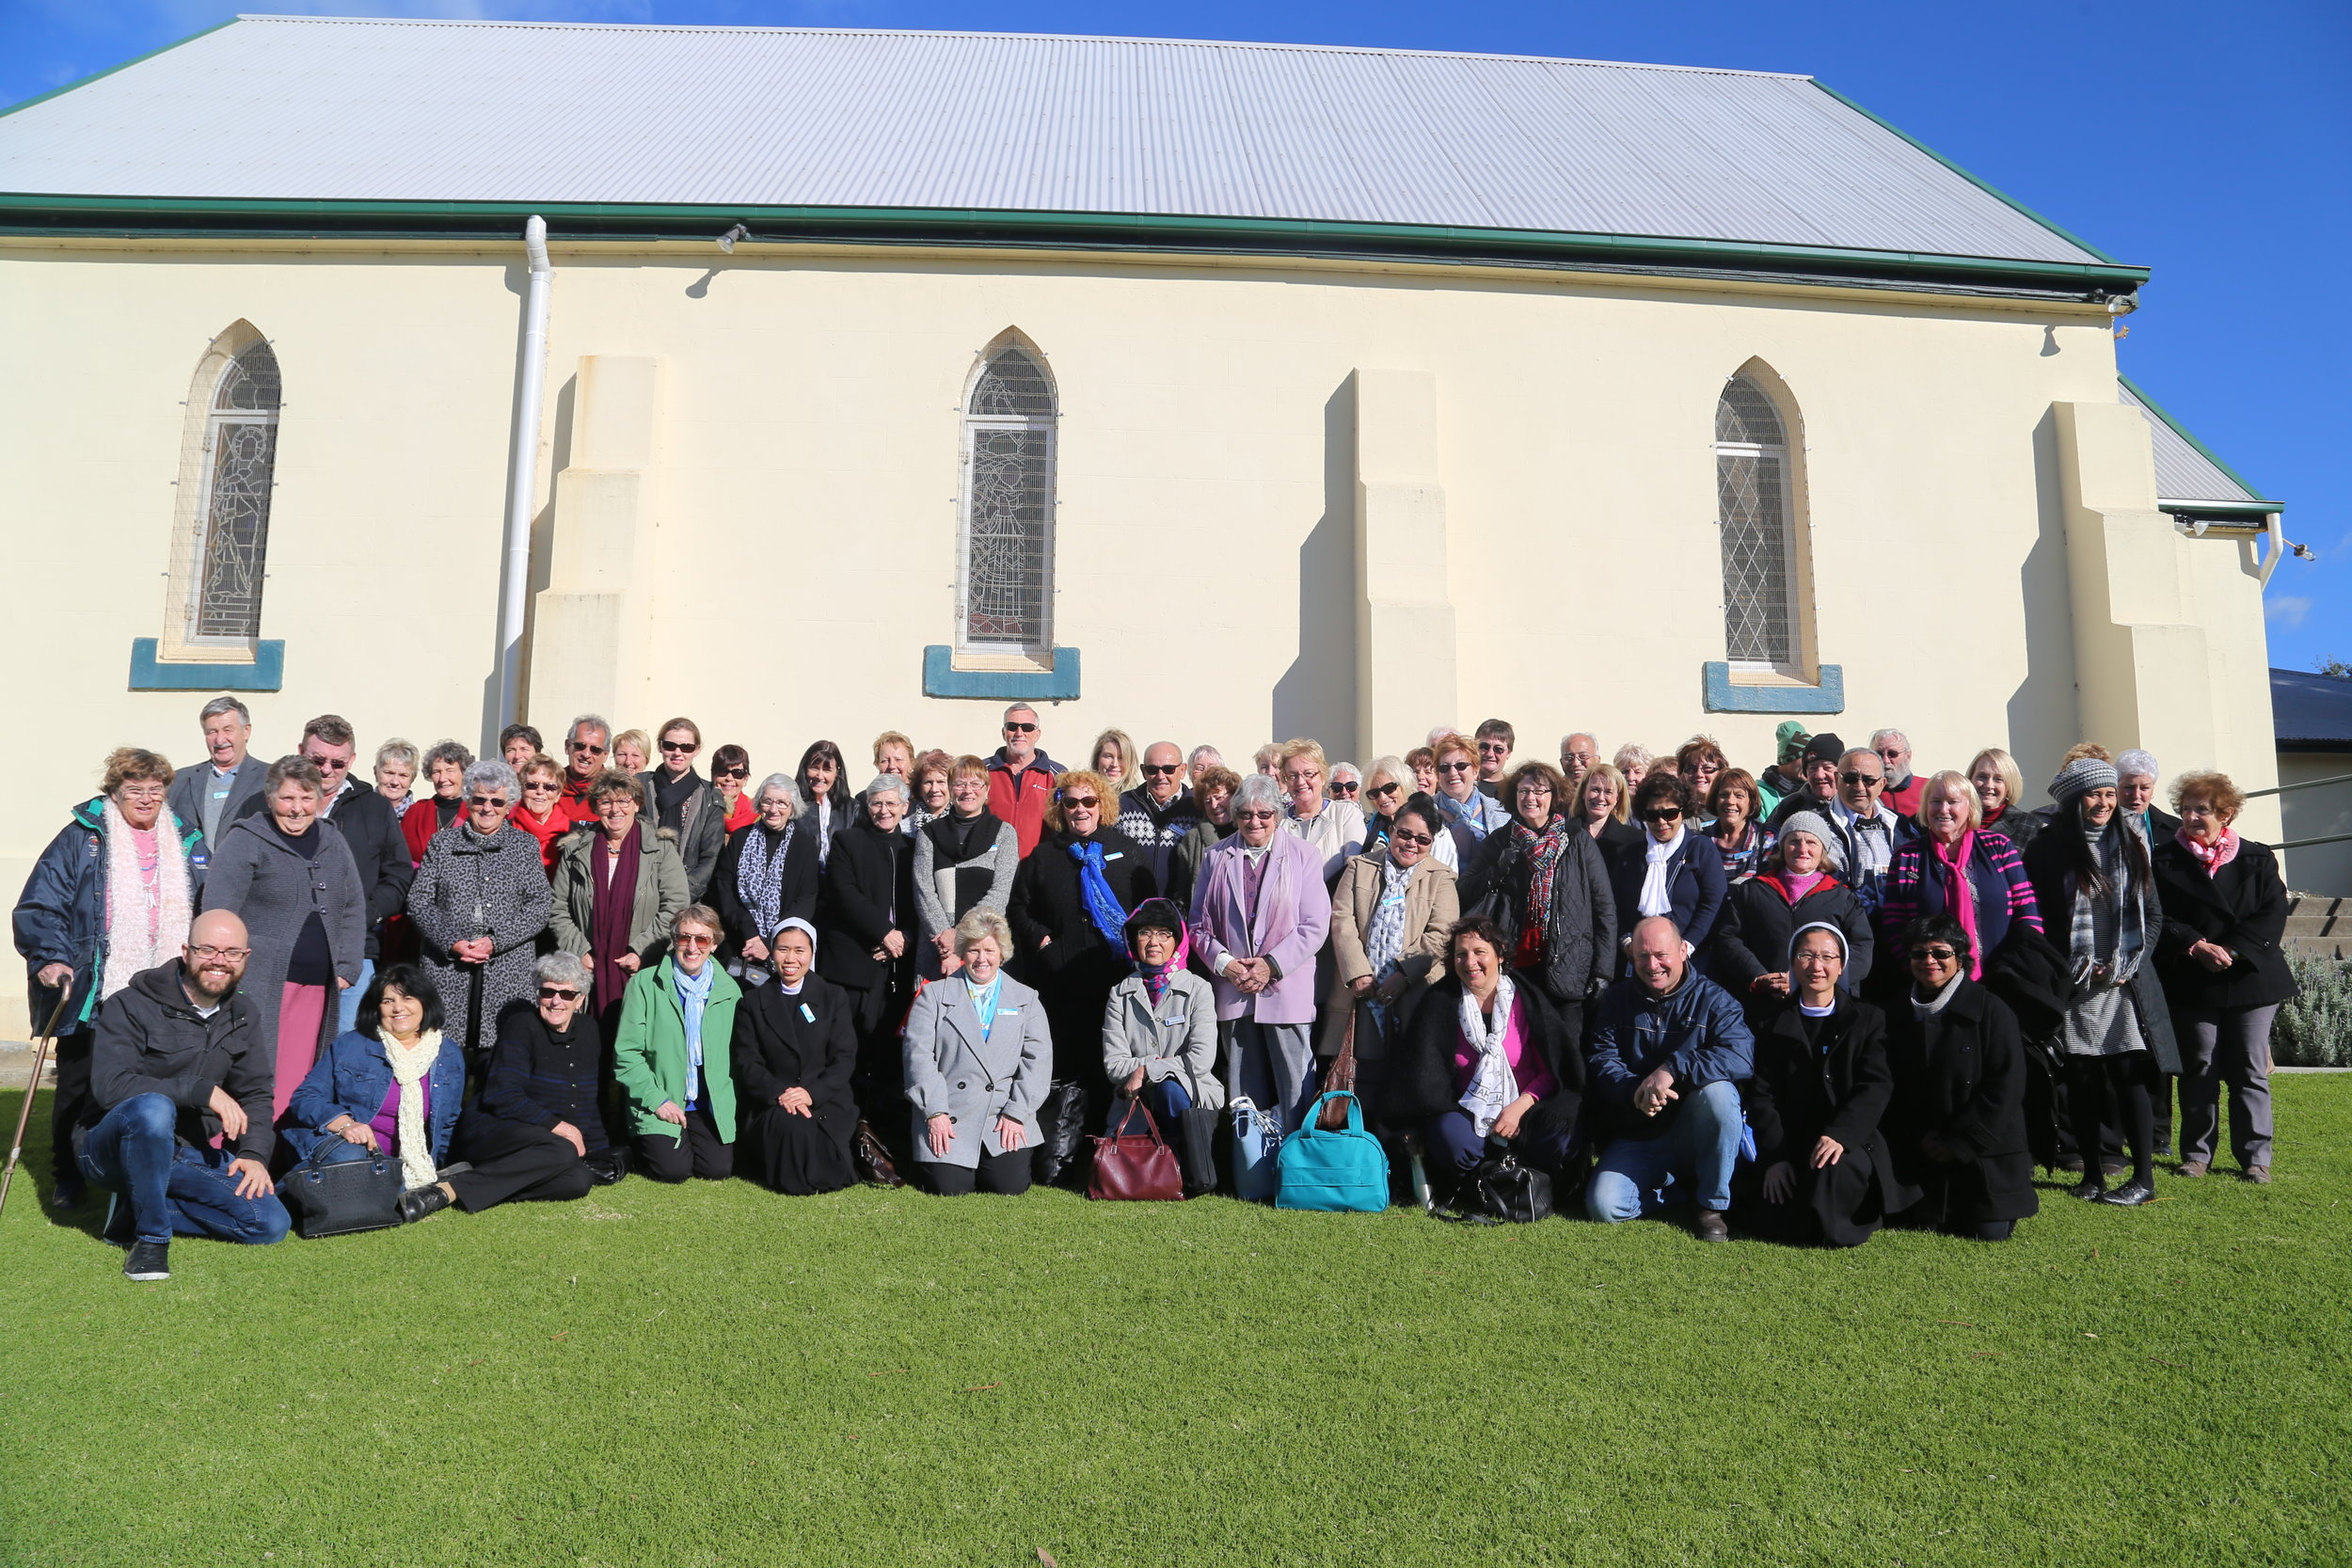 Catechists attending a retreat at St Mary Star of the Sea in Gerringong